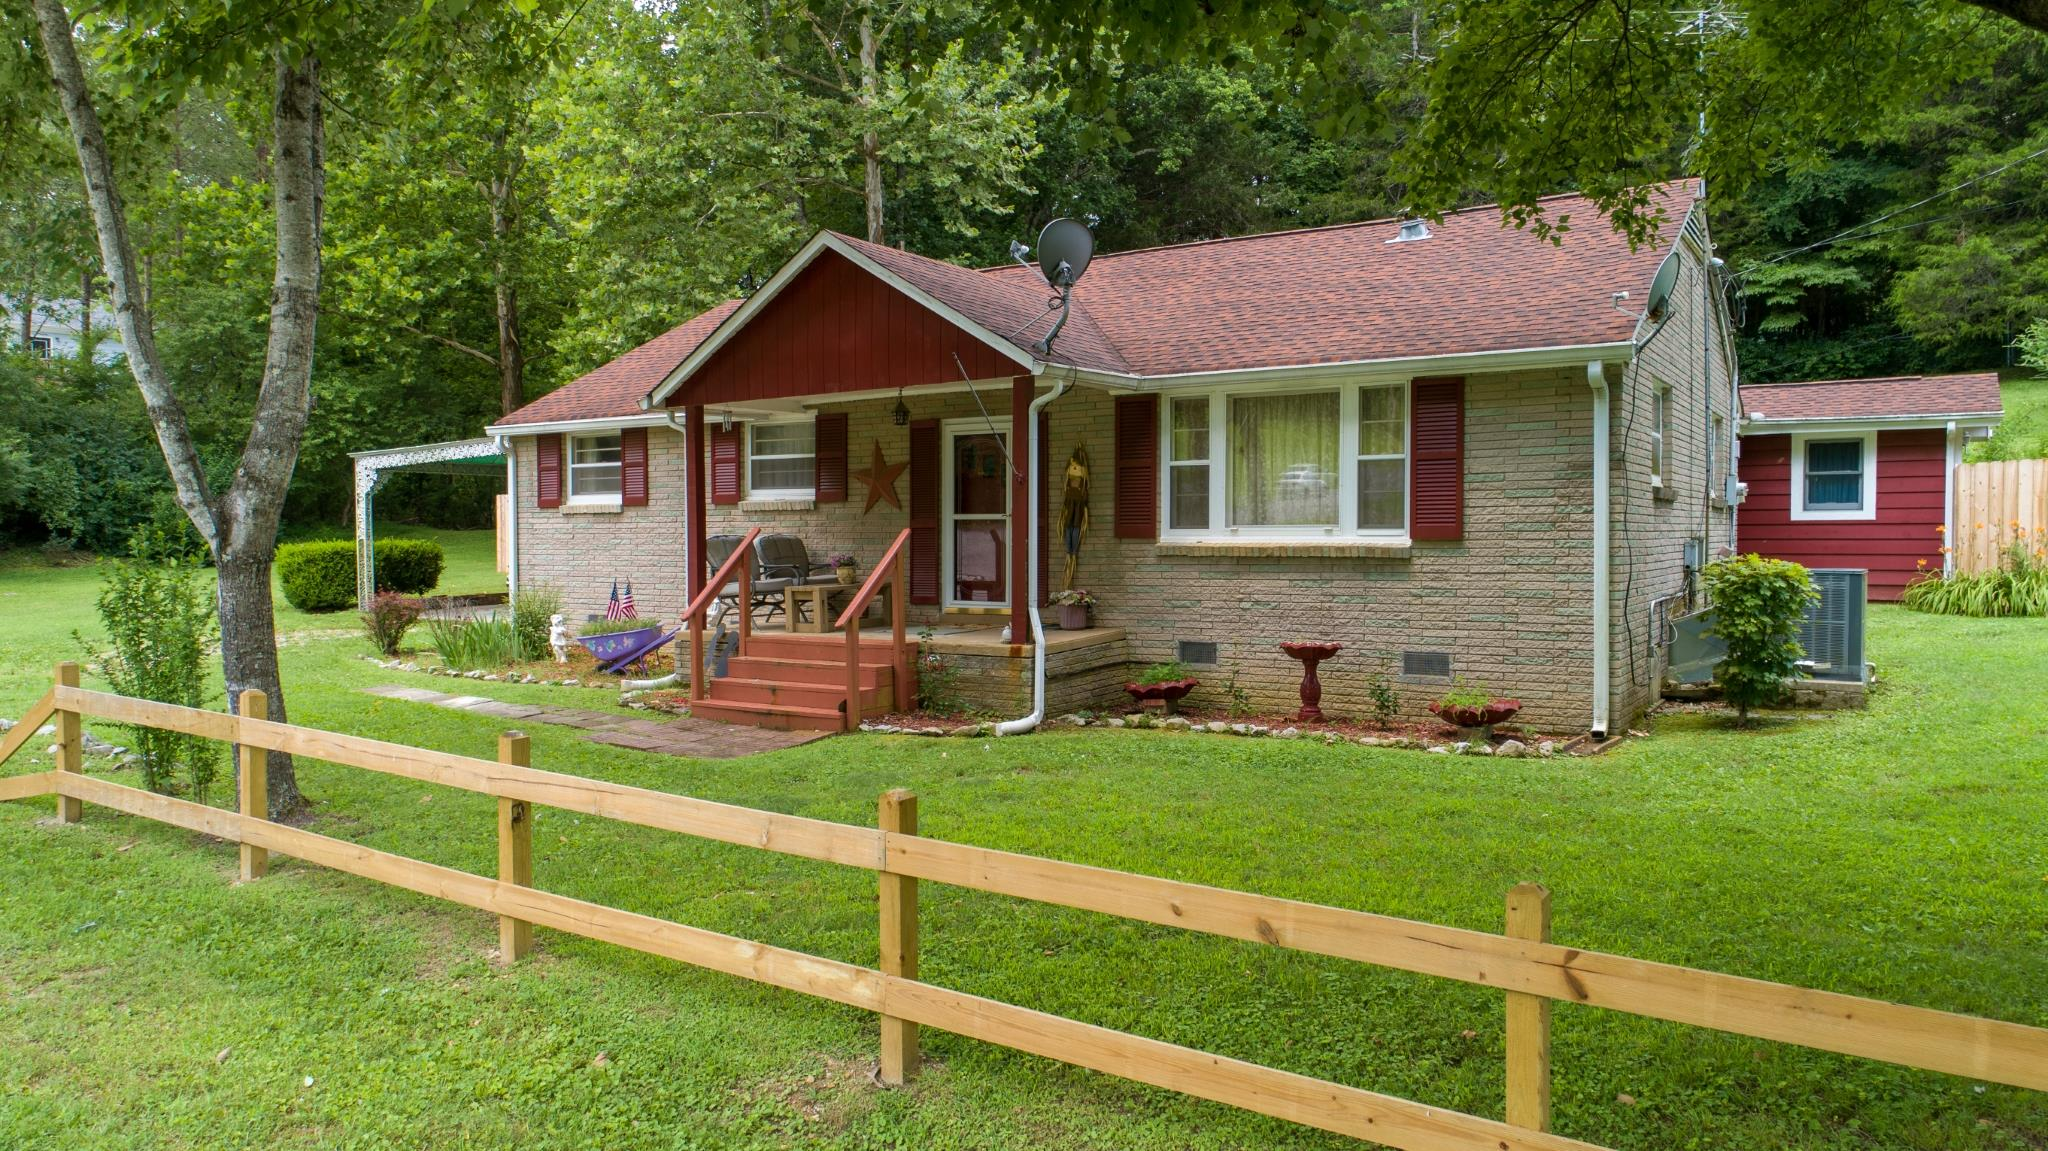 7508 Chester Rd, Fairview in Williamson County County, TN 37062 Home for Sale